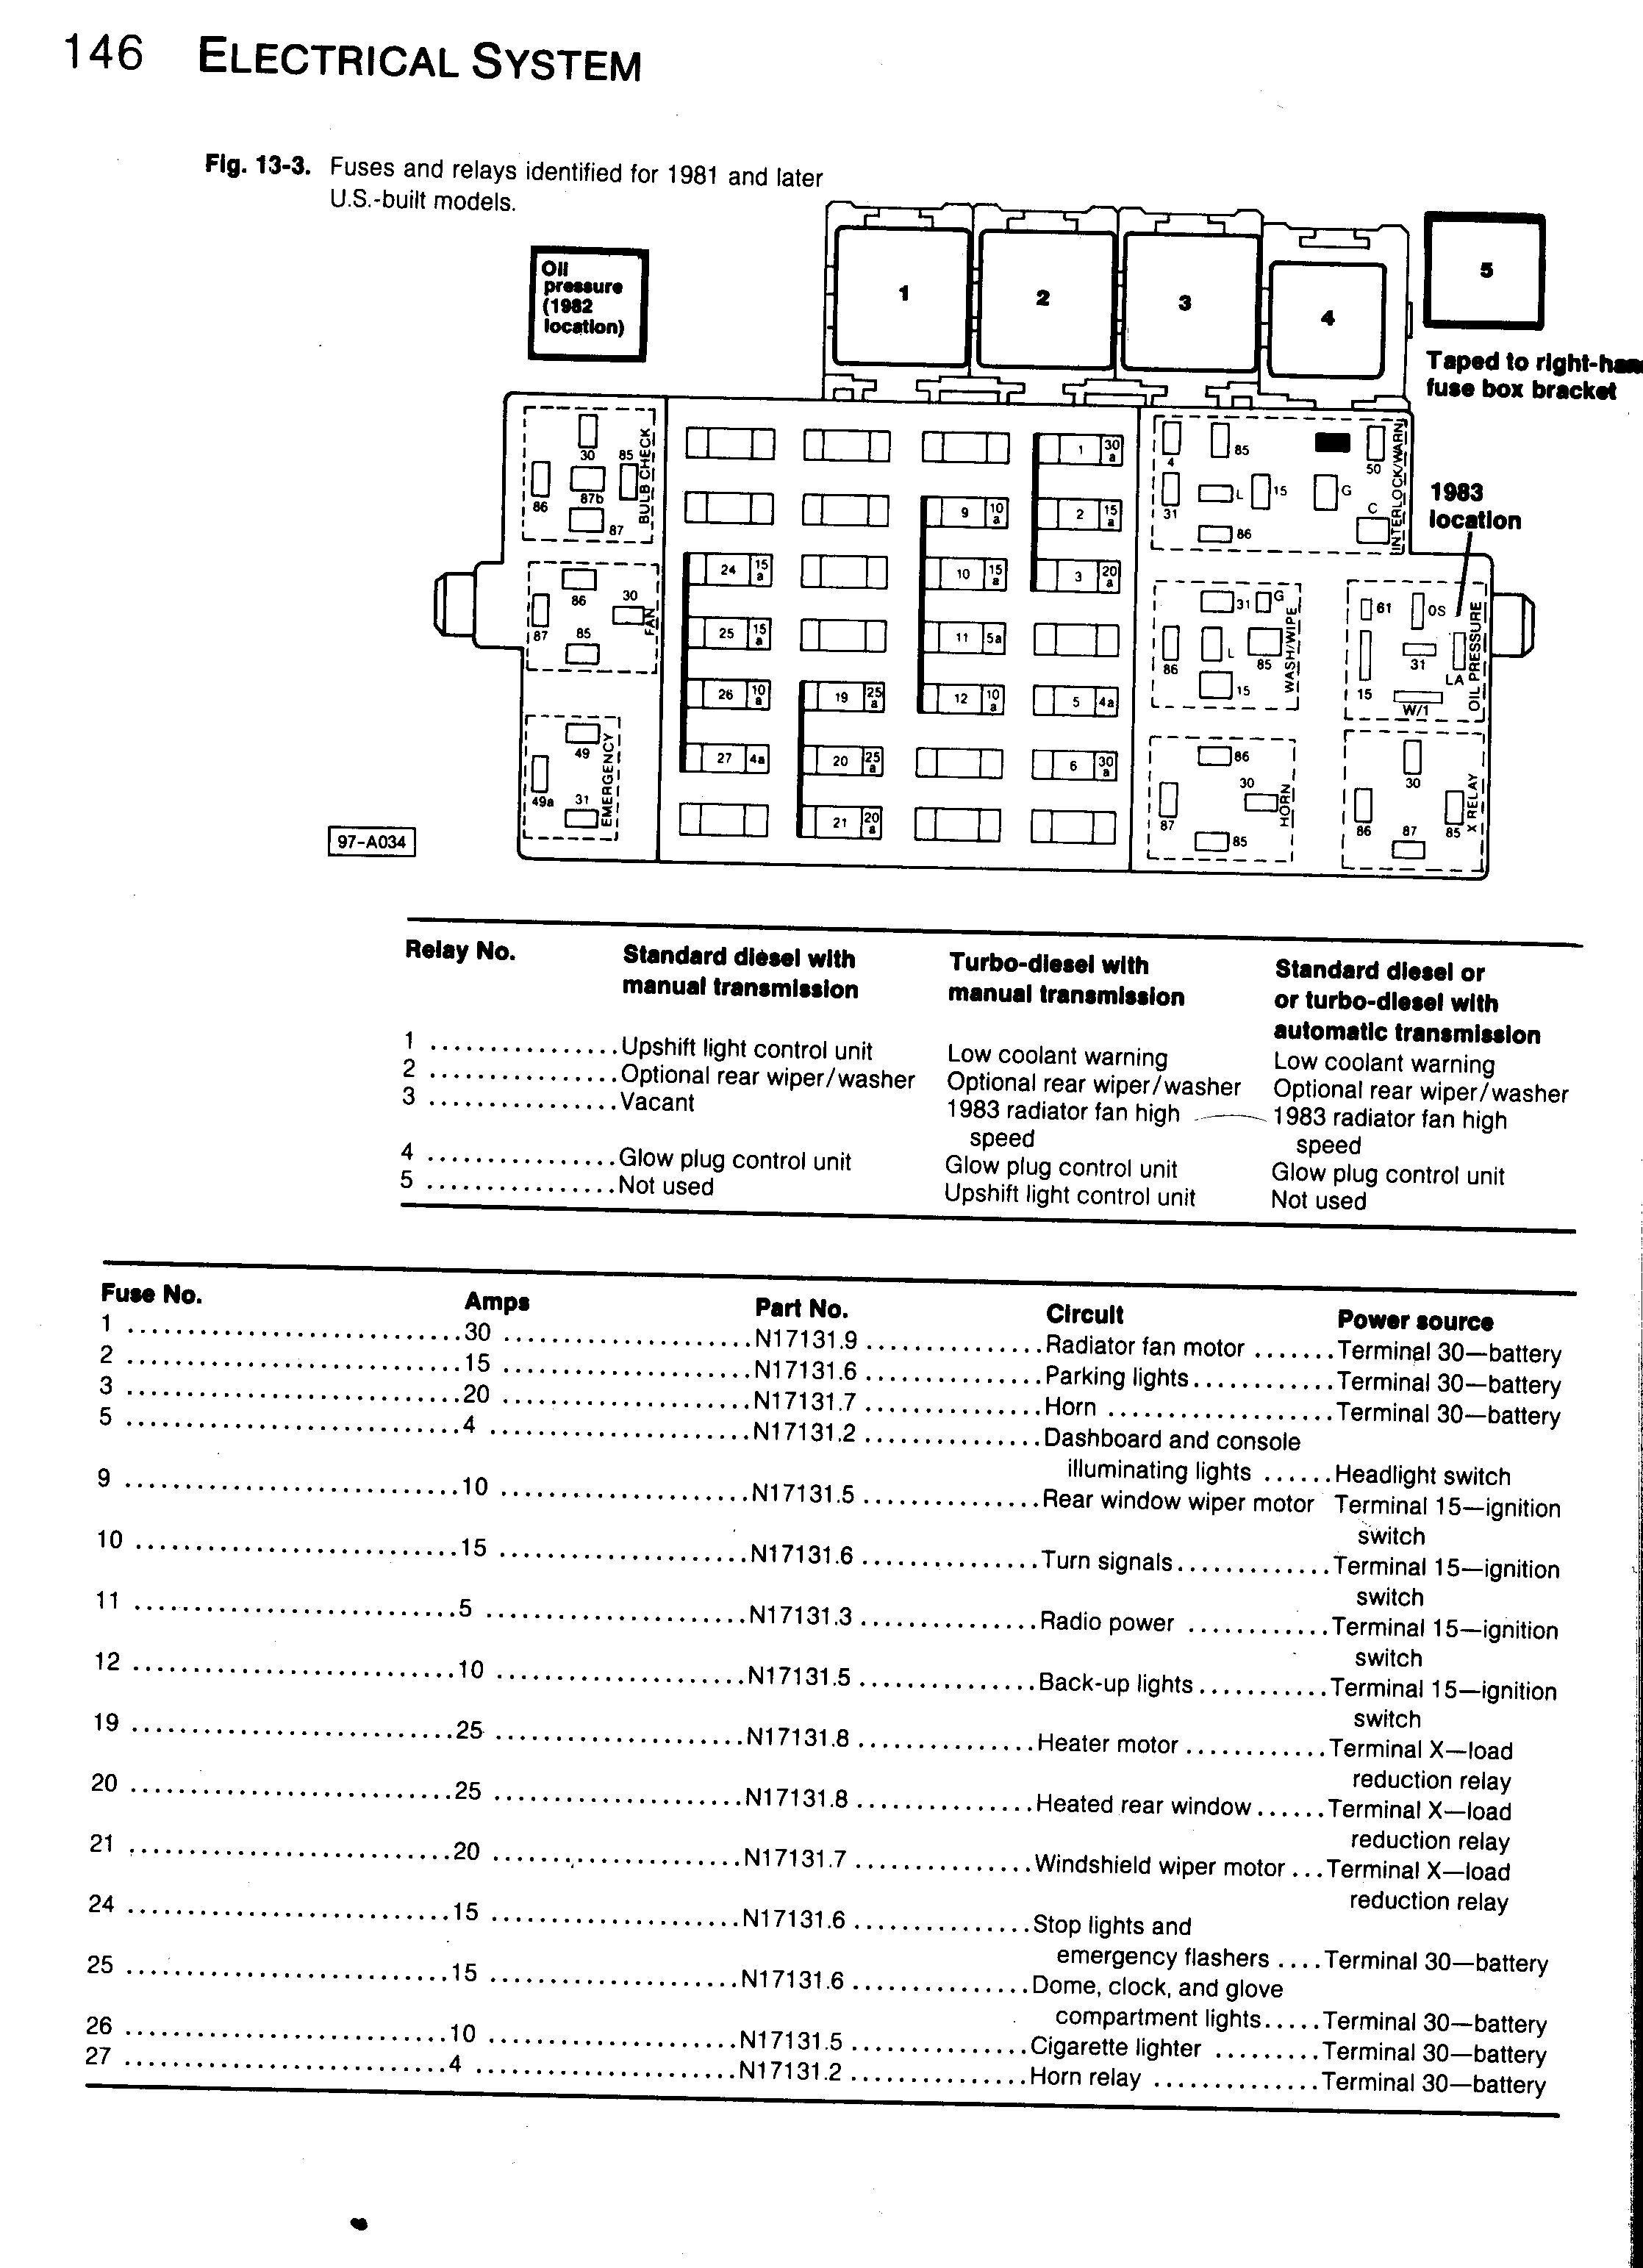 1999 Jetta Fuse Box Wiring Diagram Appearance A Appearance A Saleebalocchi It